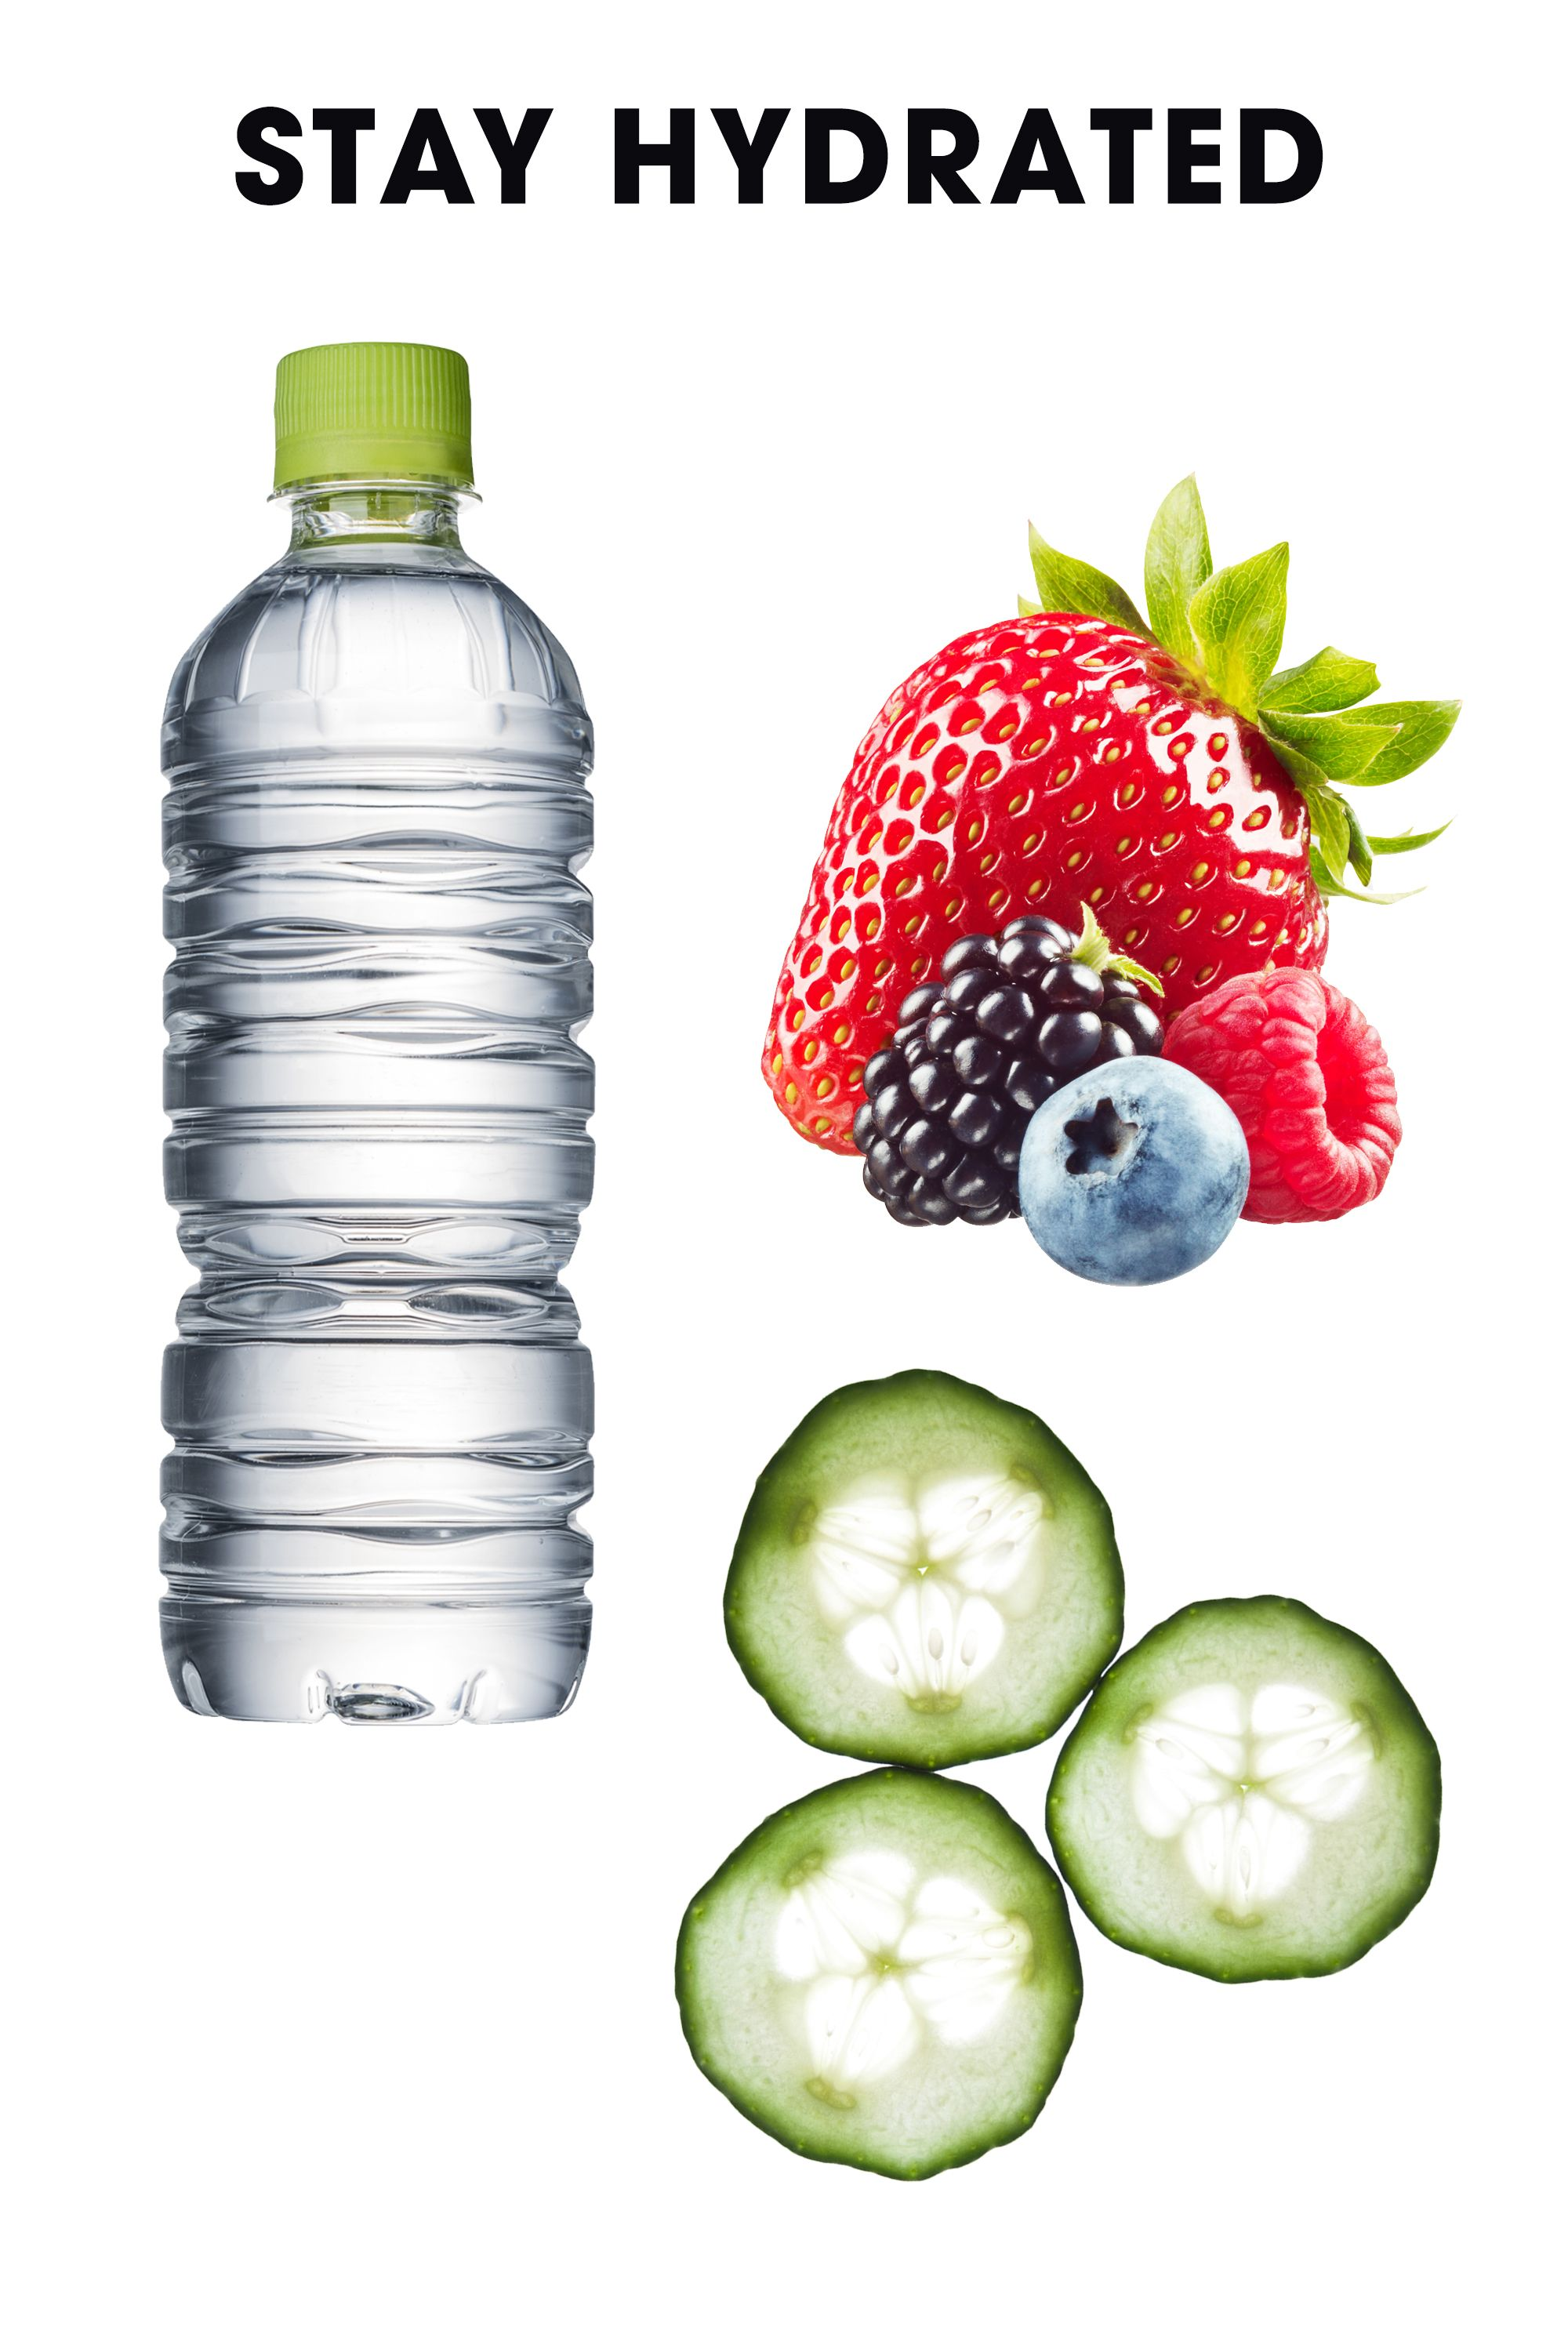 Important fact: Sunburns are dehydrating. Keep fluid levels high—not just with water, but also with H2O-packed foods like fruits and veggies.